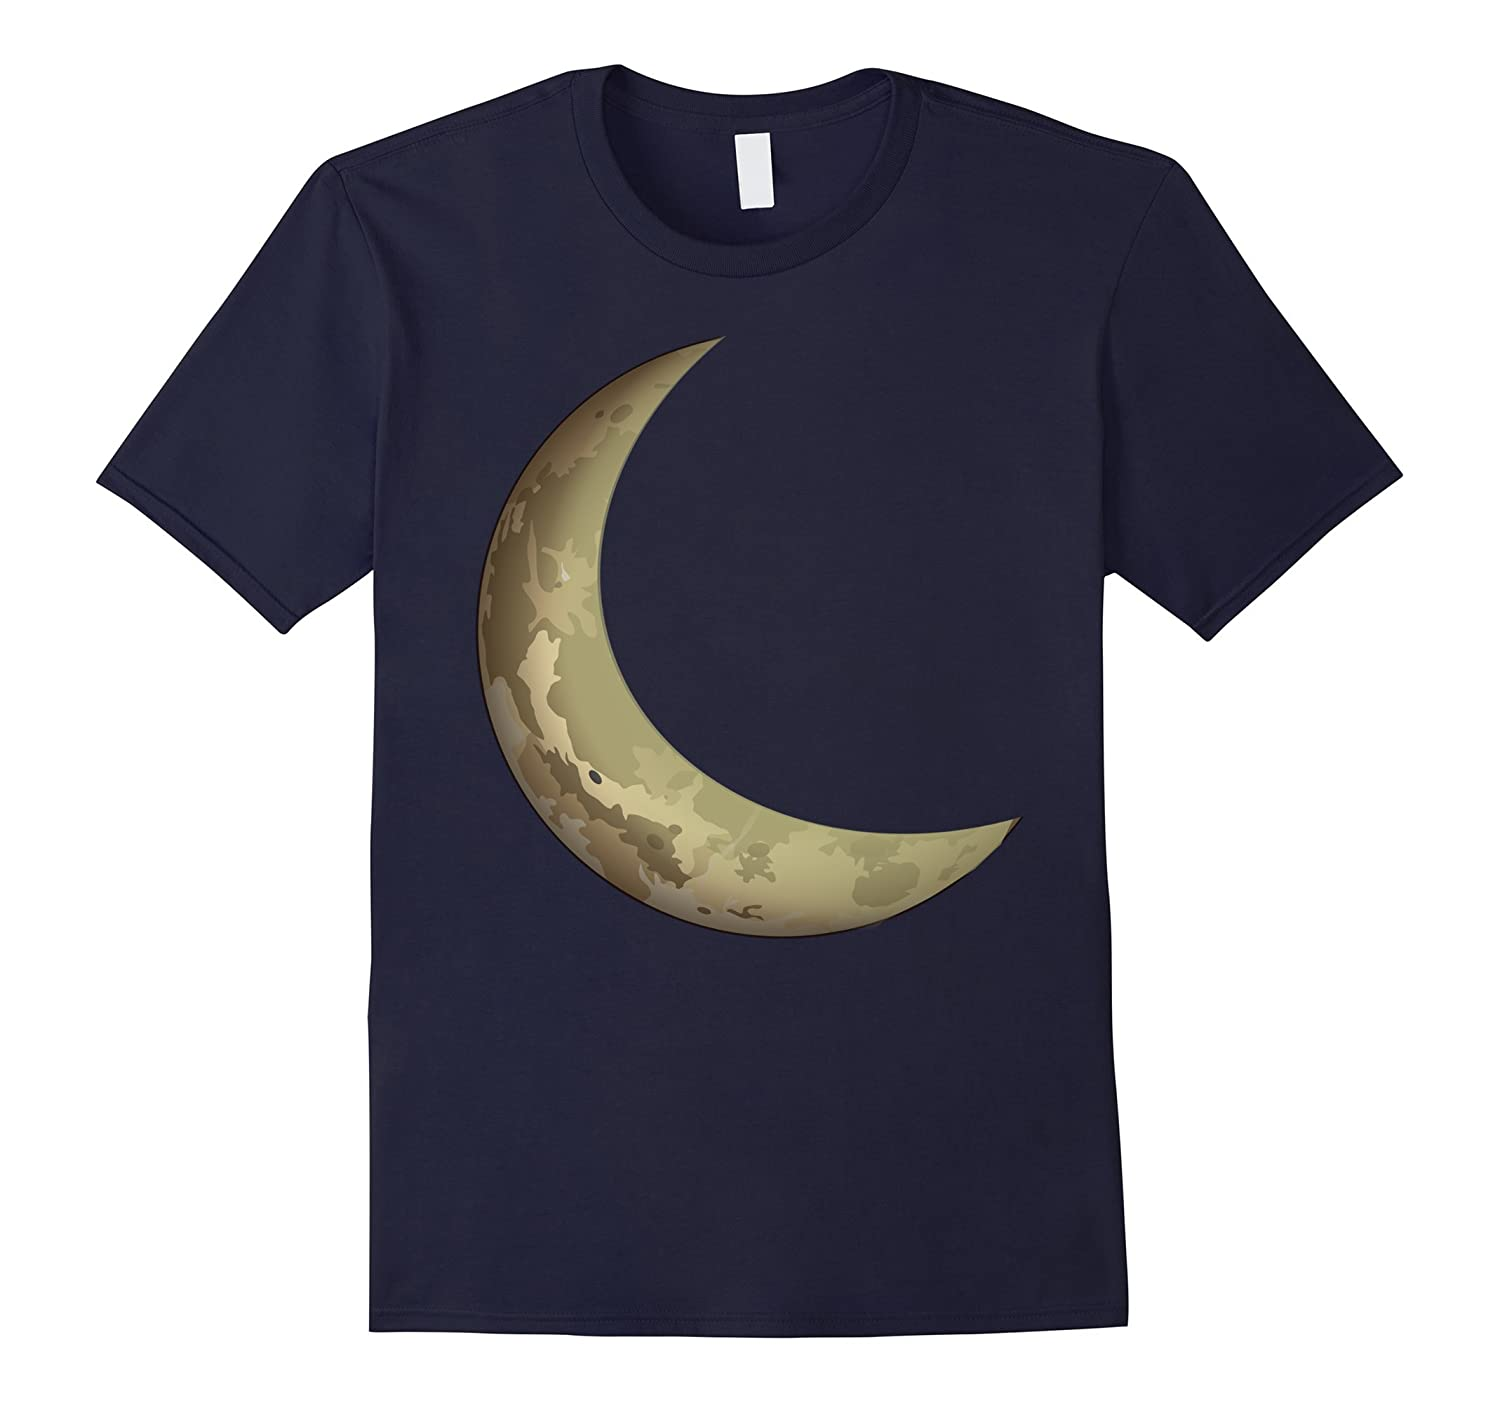 Awesome Luna Half Moon- T-Shirt - Limited Edition.-T-Shirt